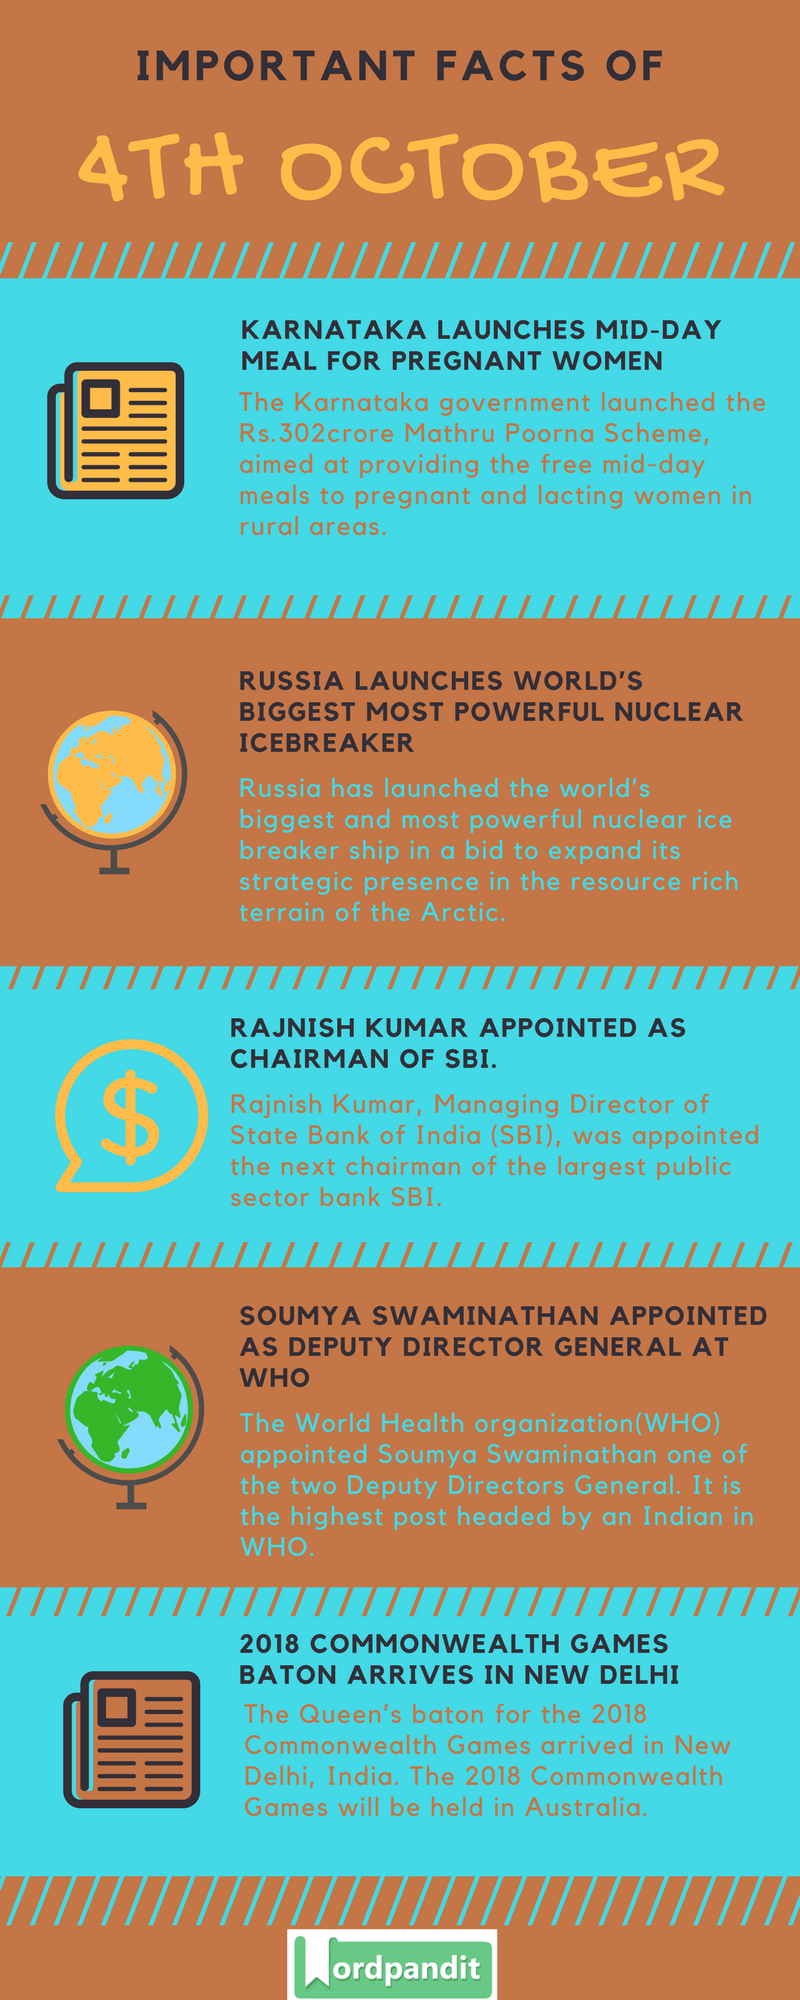 Daily-Current-Affairs-4-october-2017-Current-Affairs-Quiz-october-4-2017-Current-Affairs-Infographic